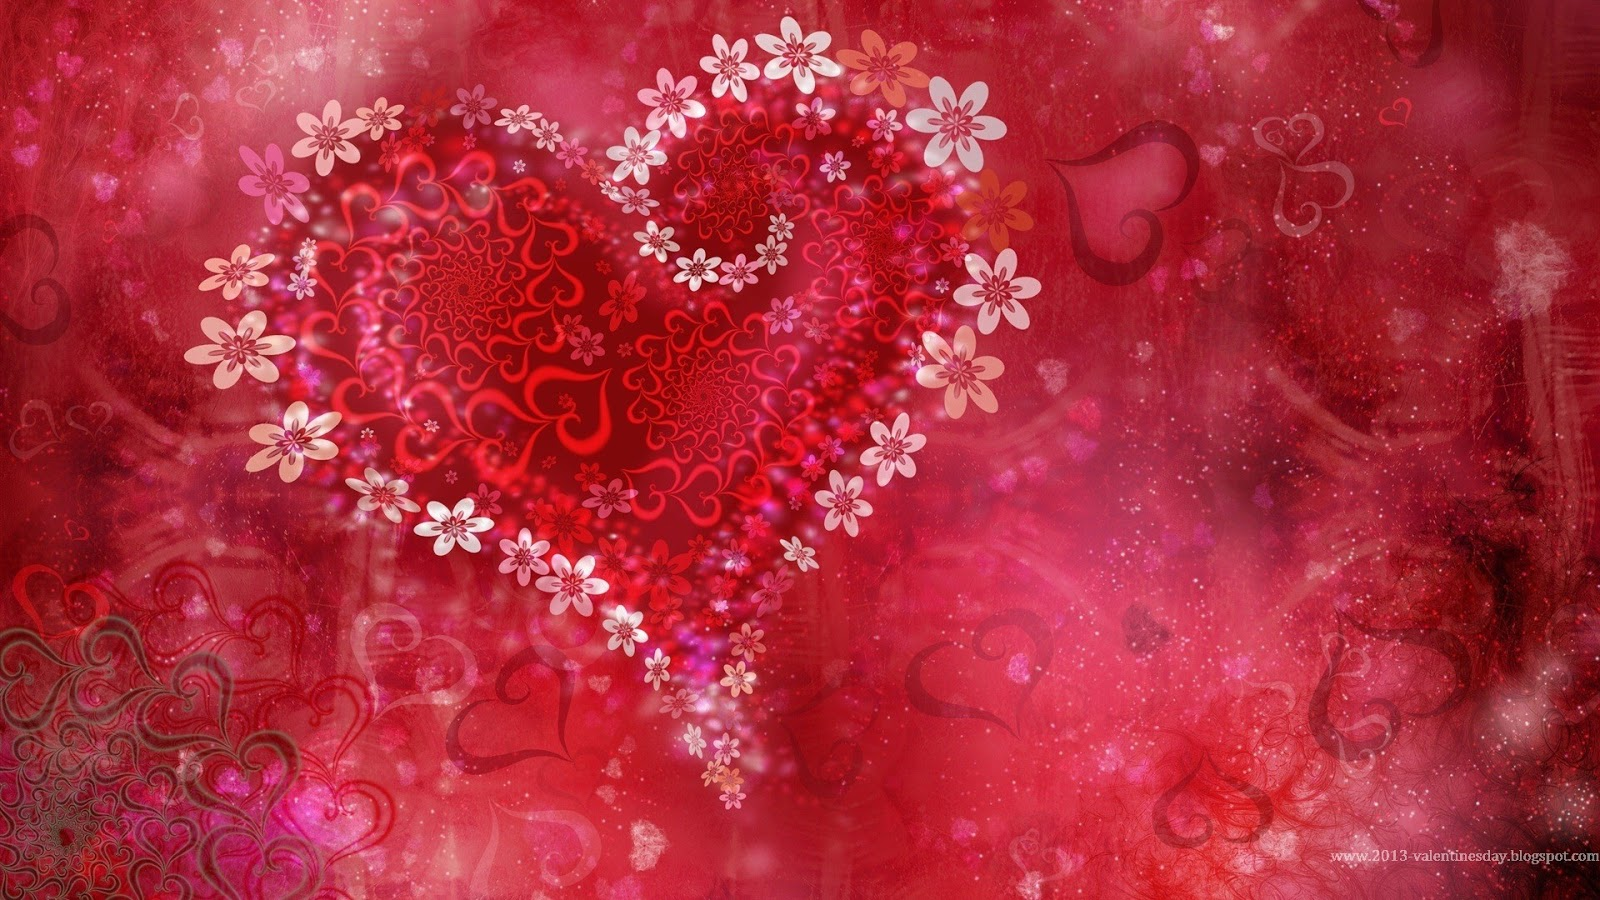 Valentines day hearts HD wallpapers 1024px and 1920px 1600x900